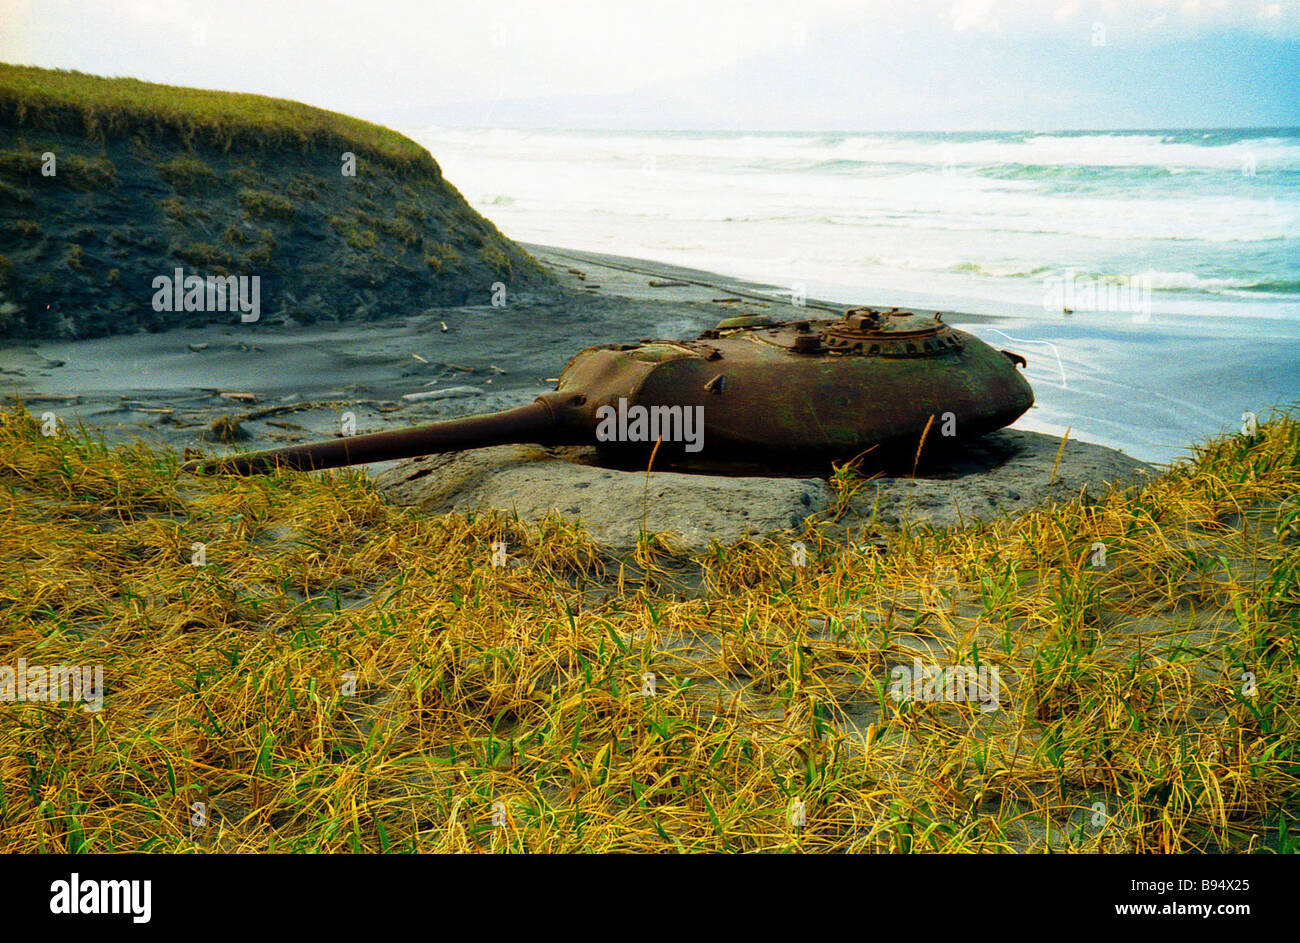 Fixed tank weapon emplacement on Iturup island the Sakhalin Region - Stock Image